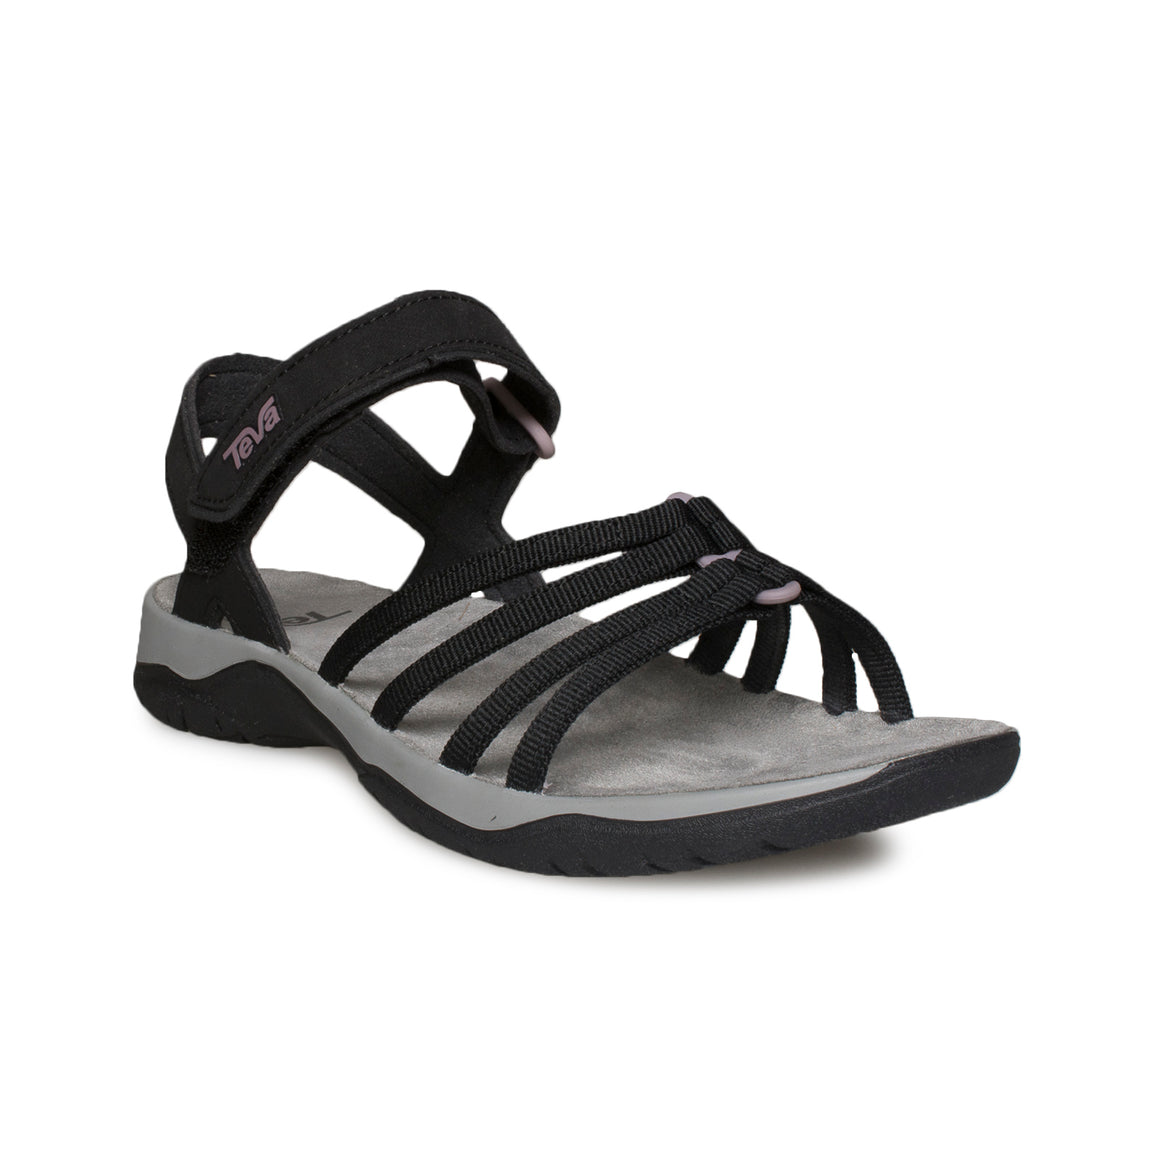 Teva Elzada Web Black Sandals - Women's